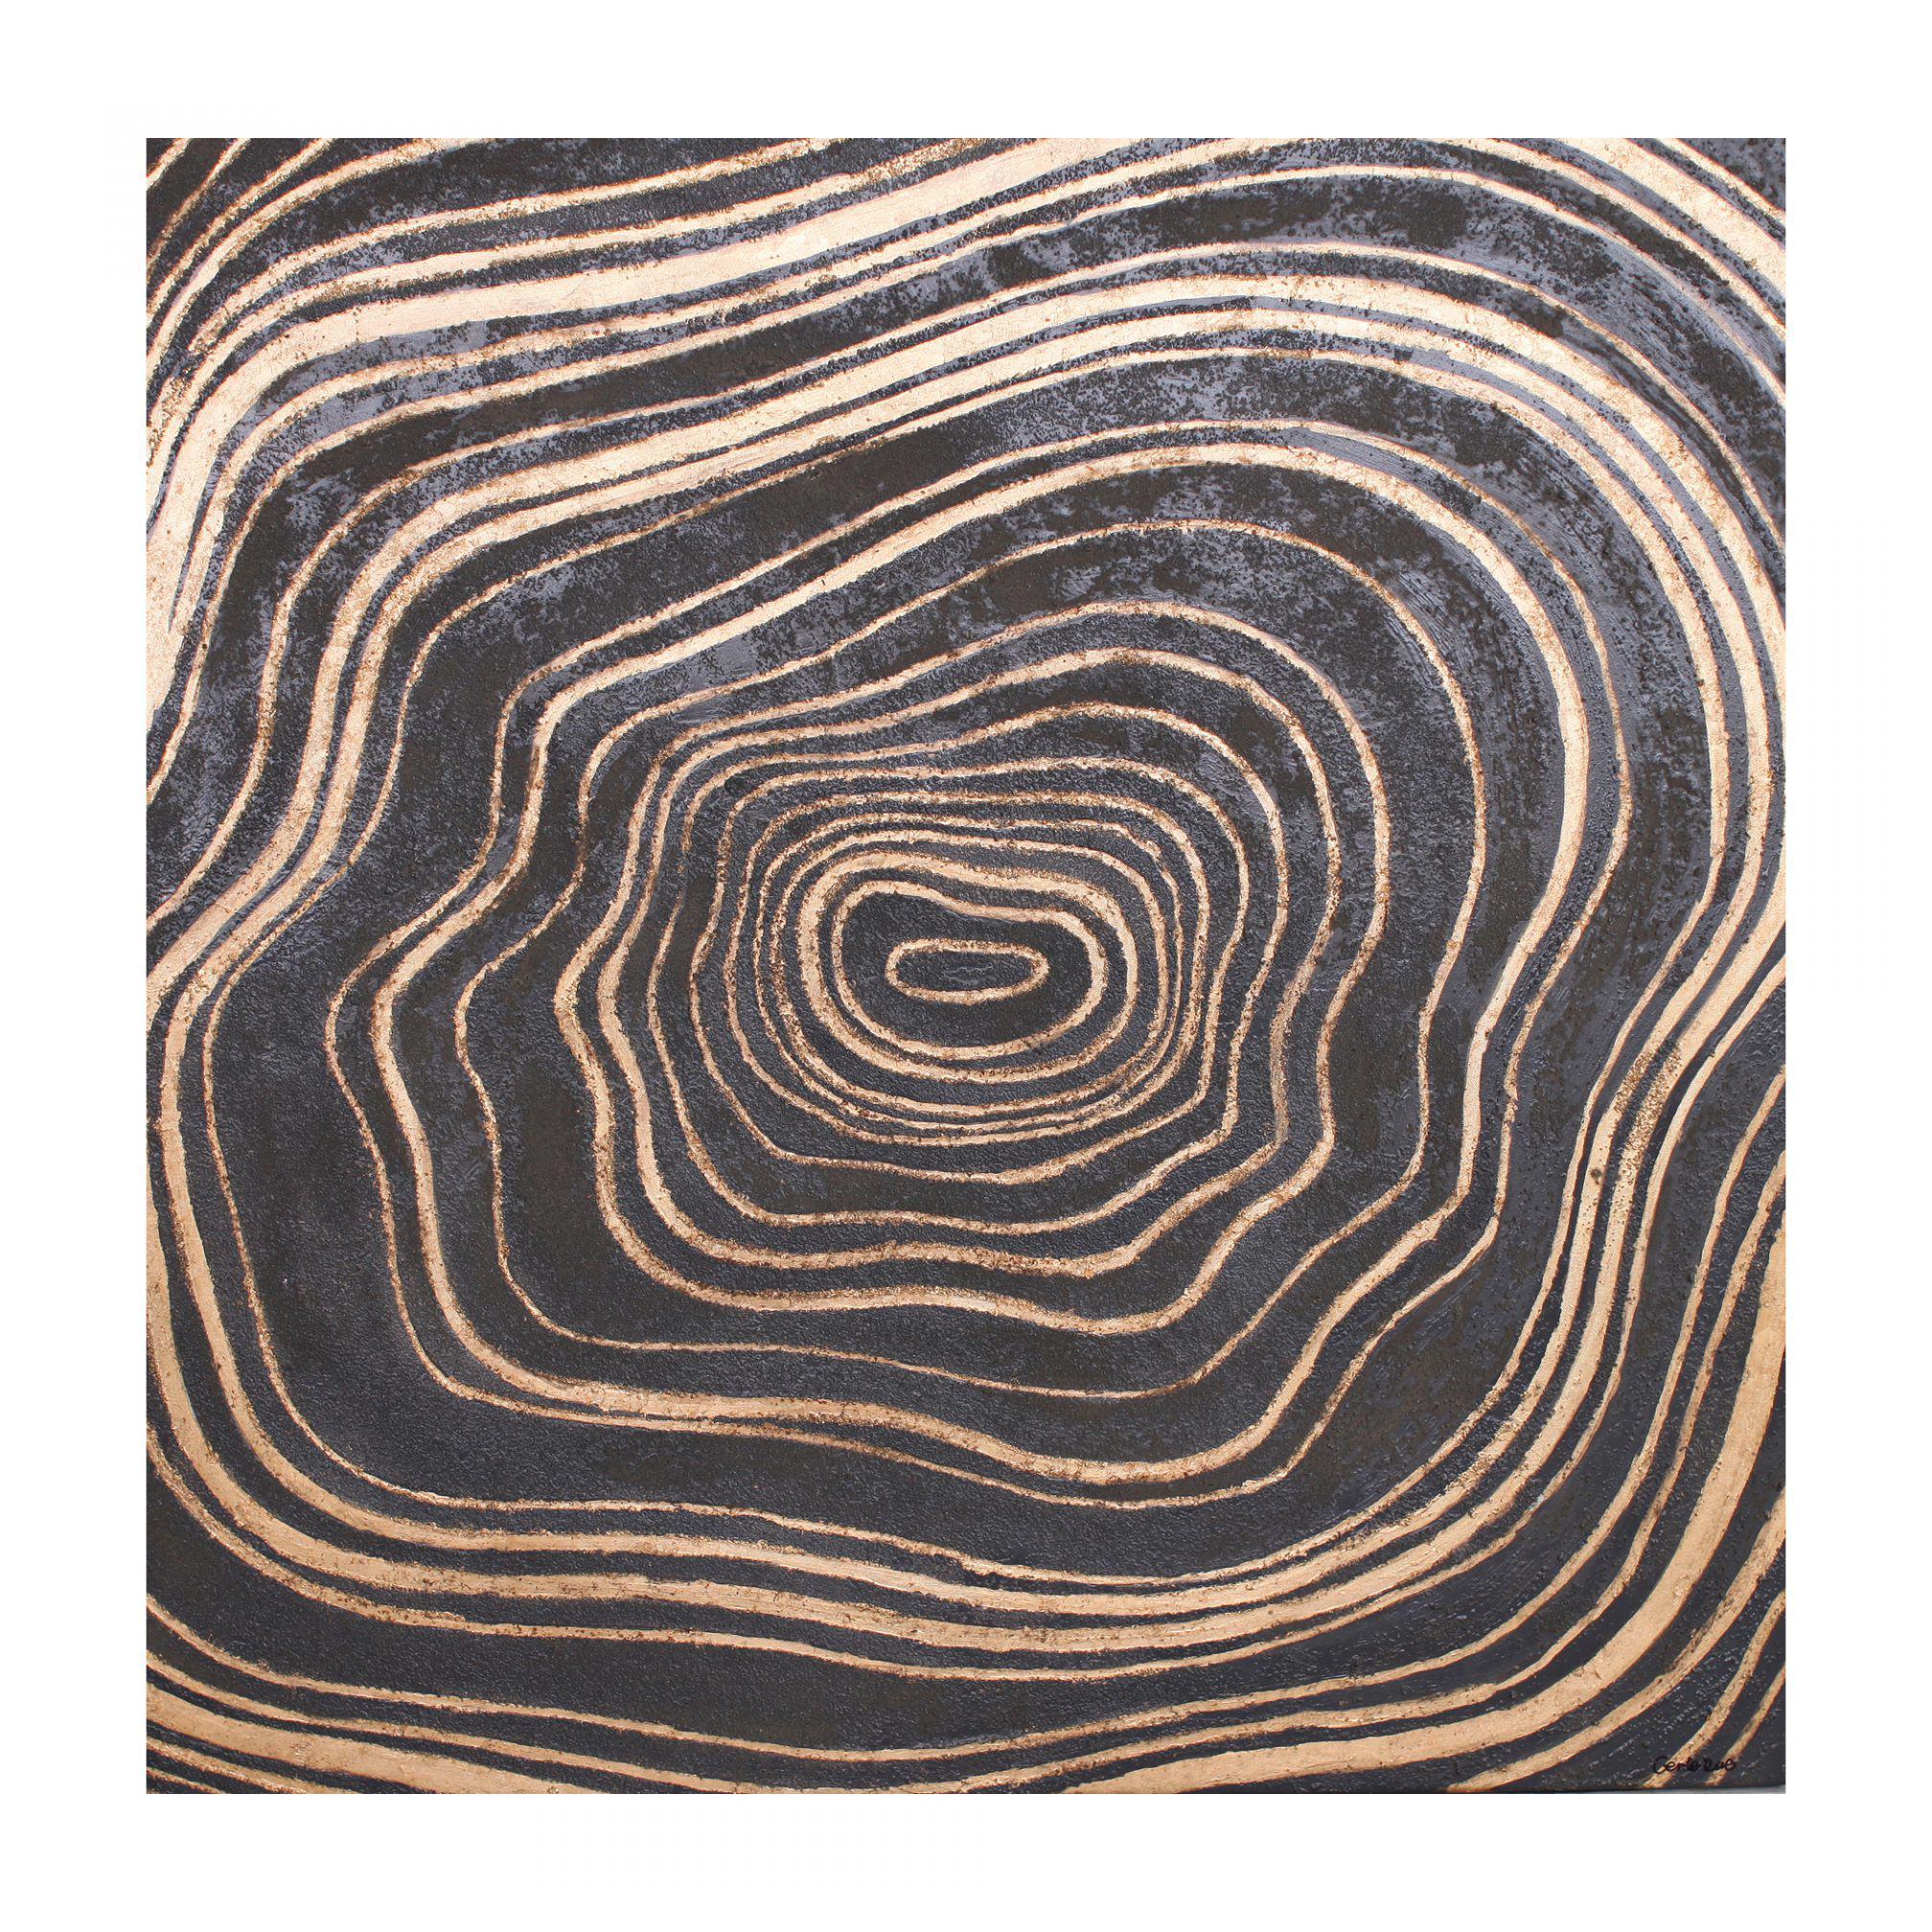 Widely Used Tree Rings Wall Decor – Peter Corvallis Productions Within Rings Wall Decor (View 20 of 20)